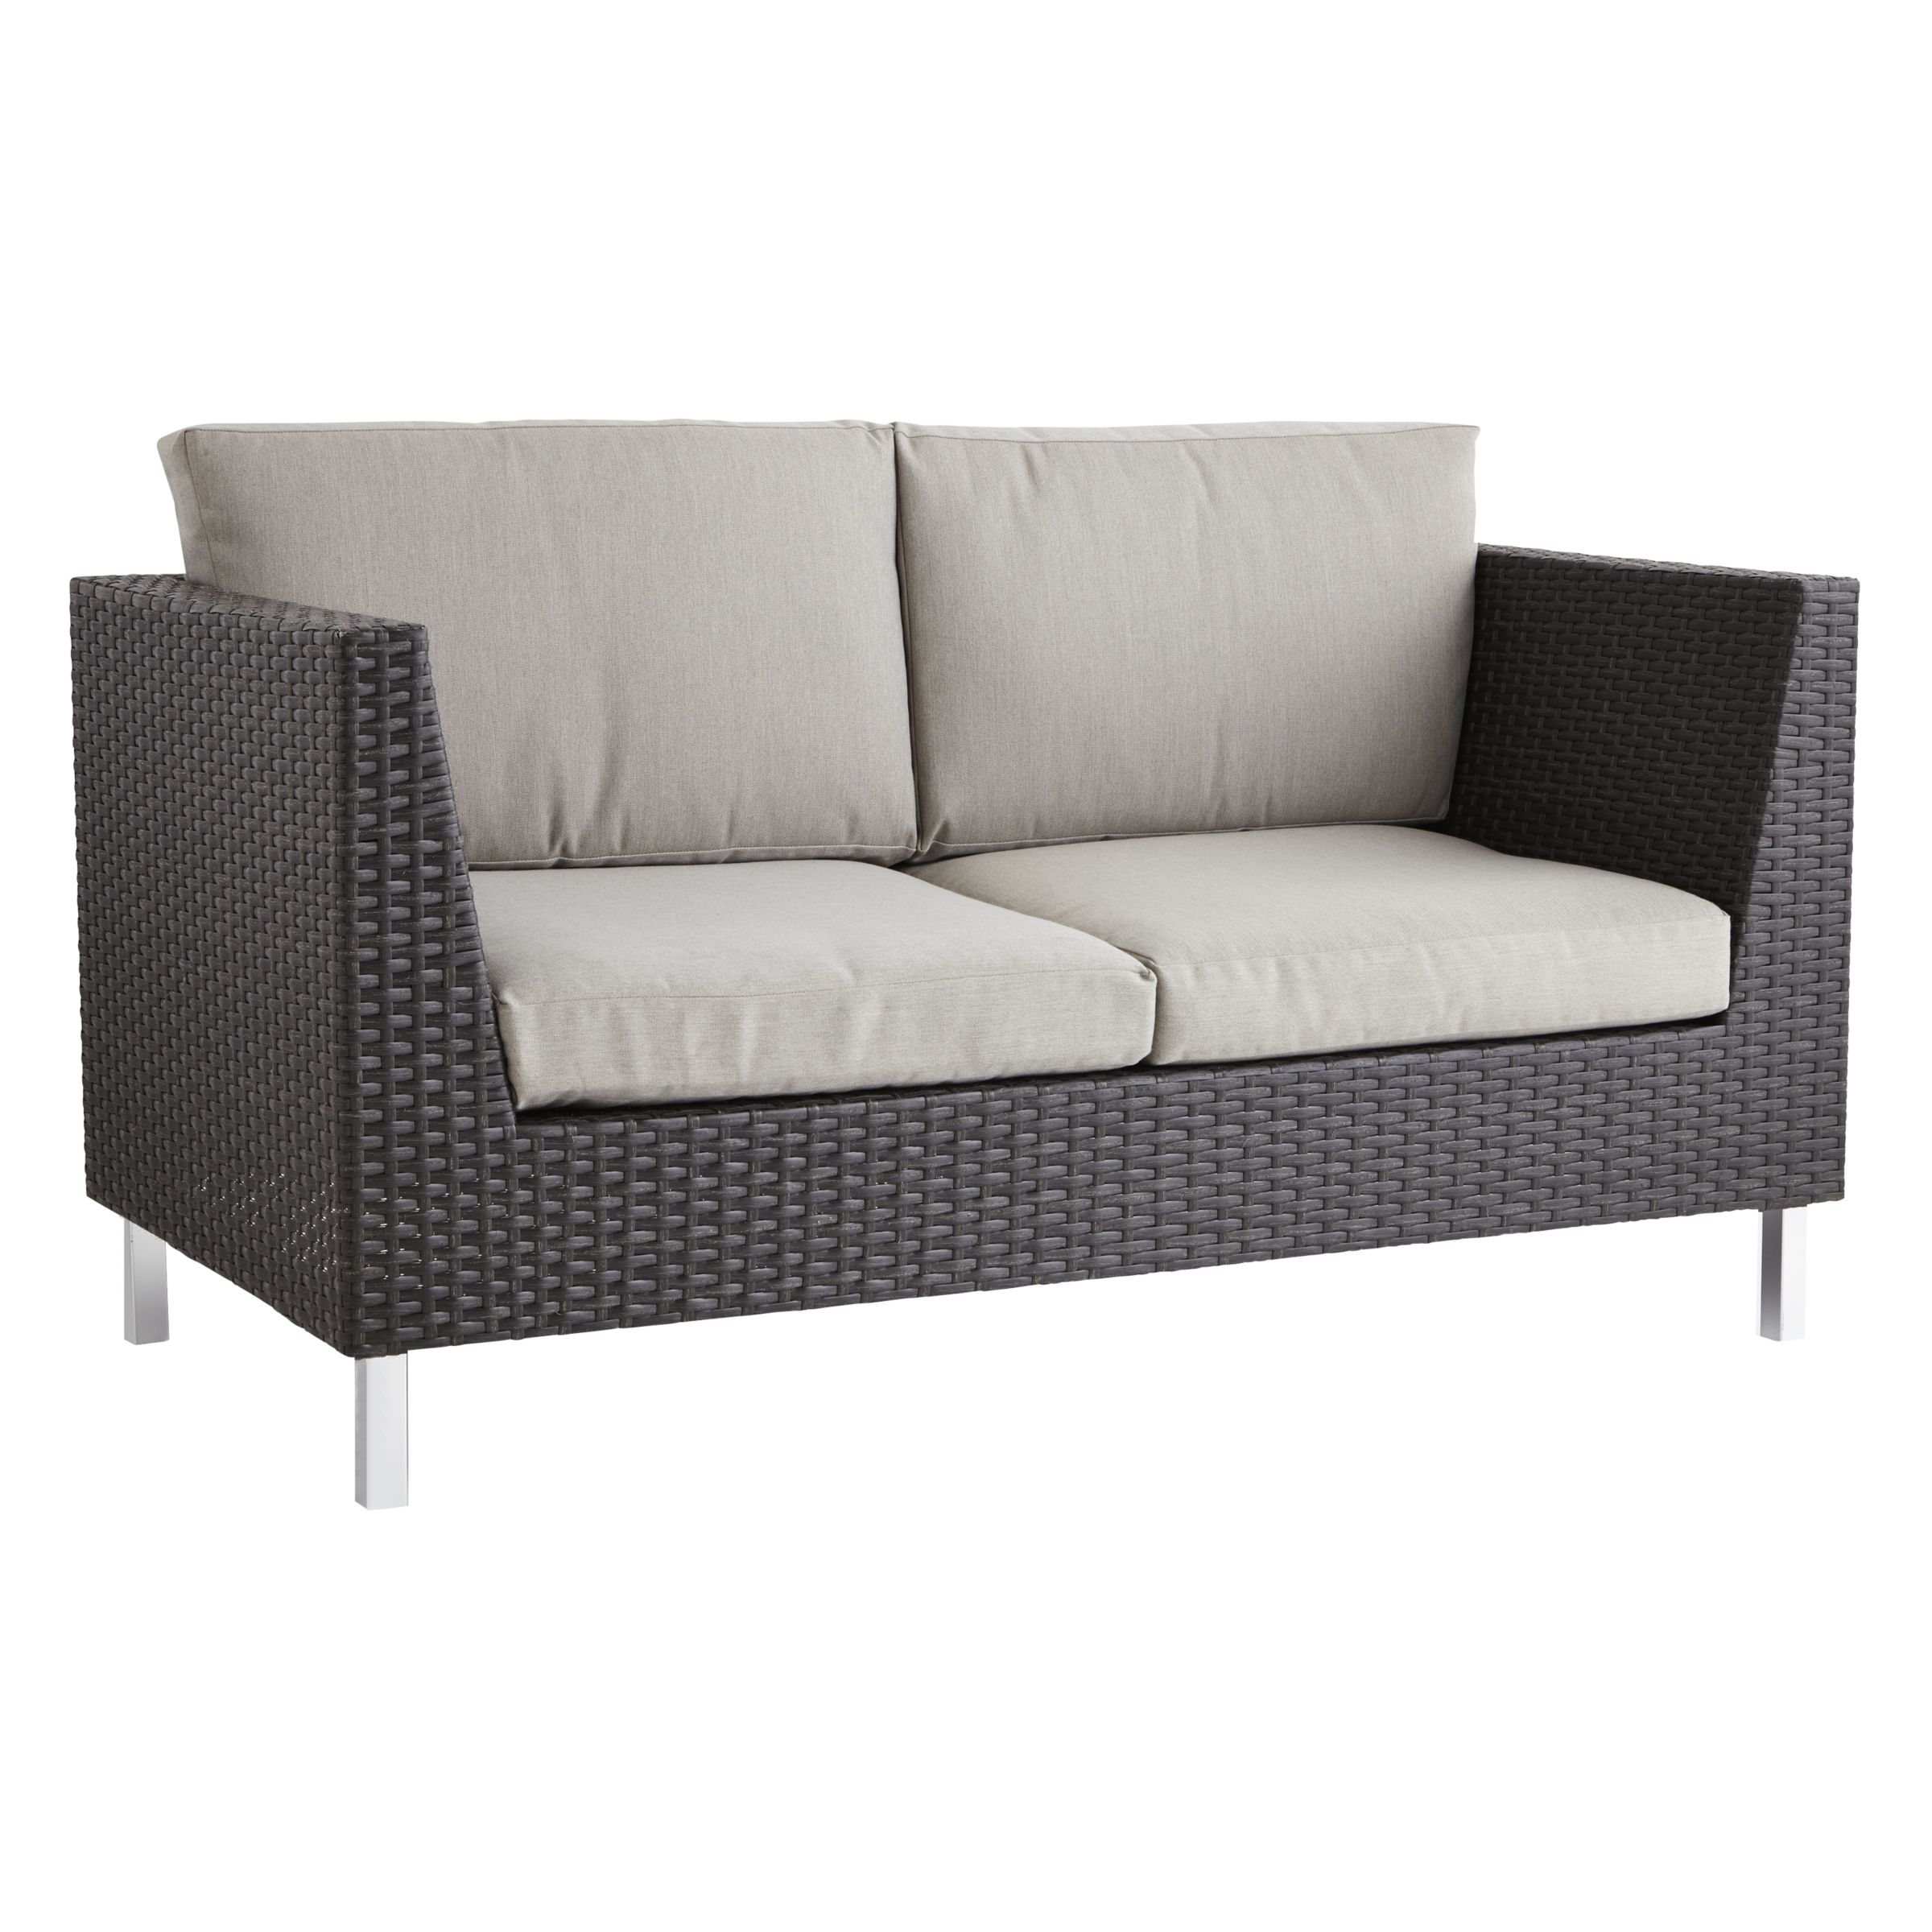 John Lewis Madrid Sofa